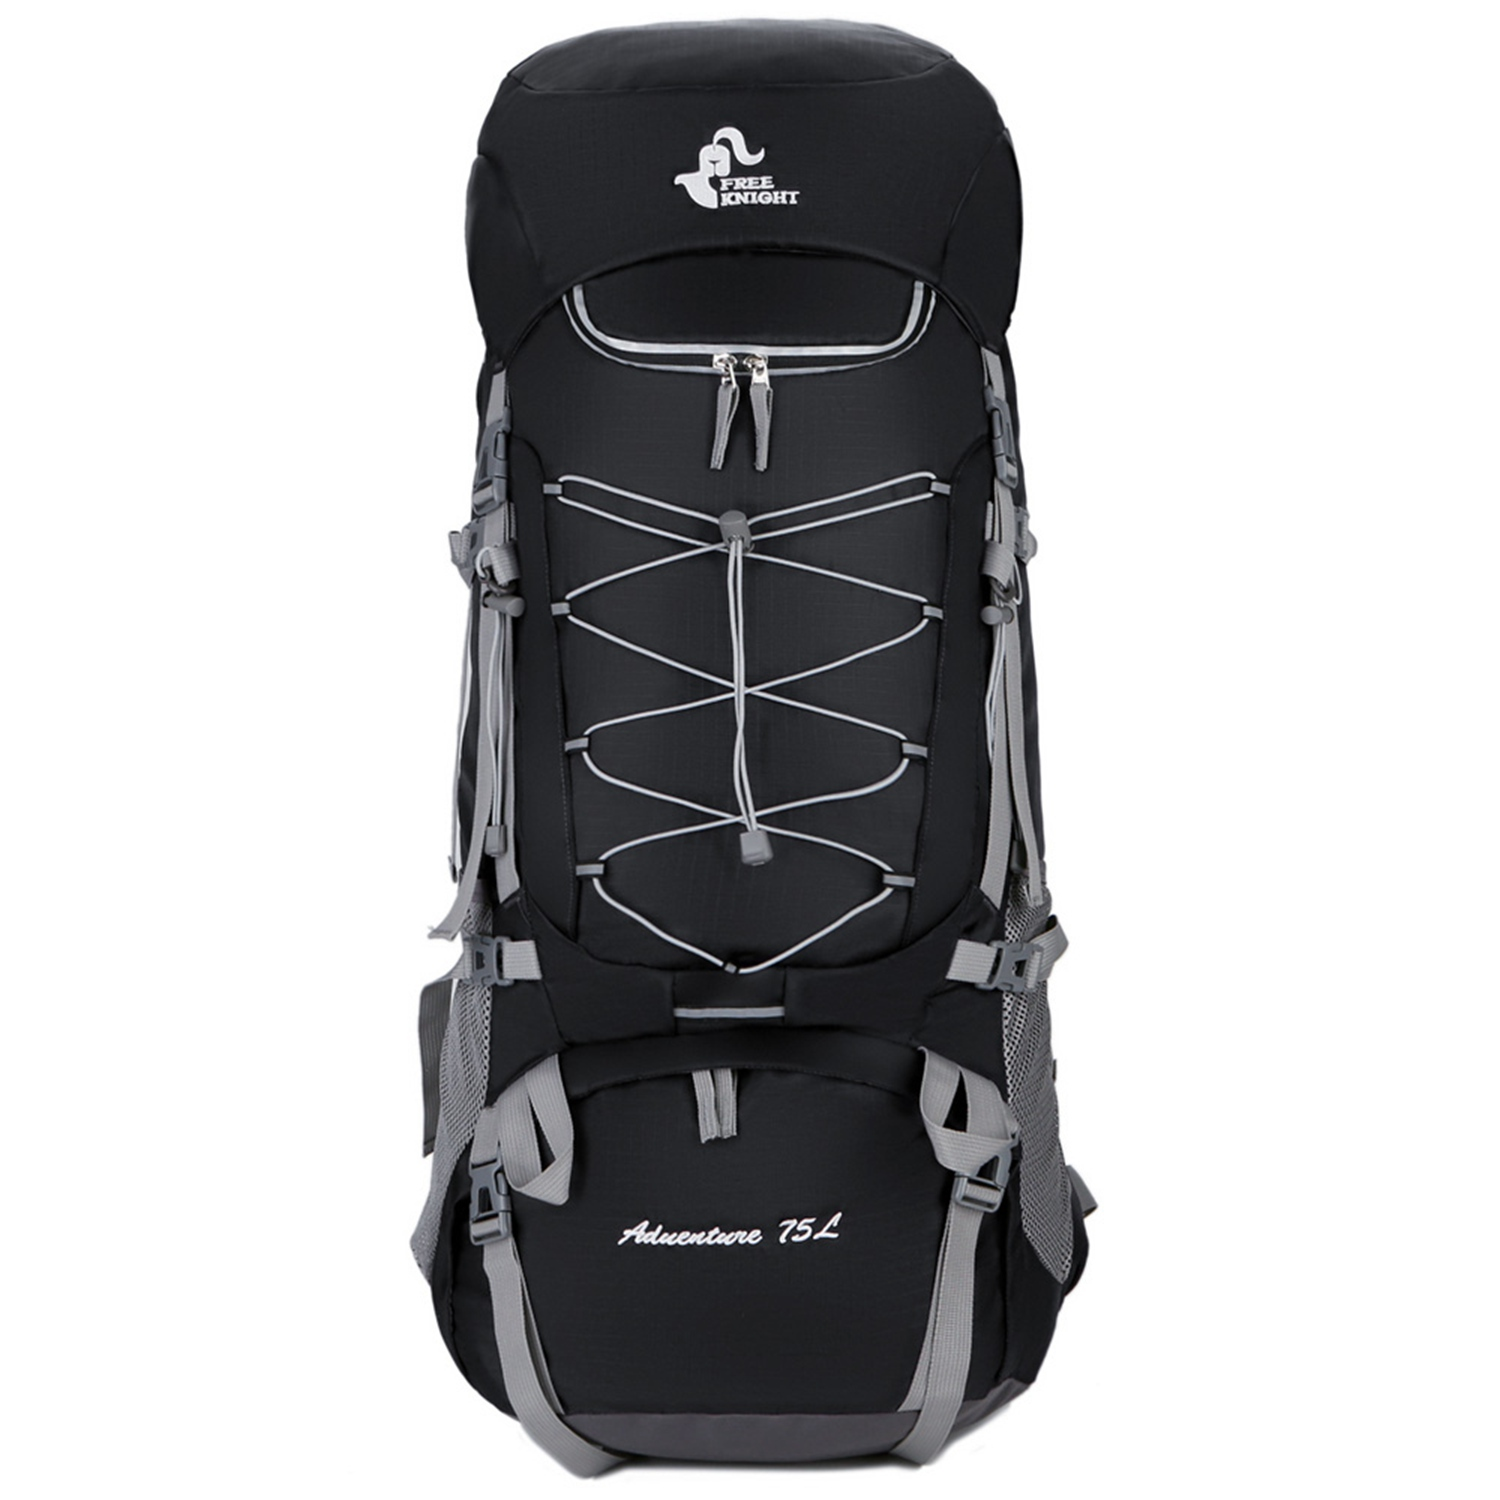 Free Knight 75L Water-Resistant Hiking Backpack Lightweight Camping Pack Travel Mountaineering Backpacking Trekking RucksacksFree Knight 75L Water-Resistant Hiking Backpack Lightweight Camping Pack Travel Mountaineering Backpacking Trekking Rucksacks